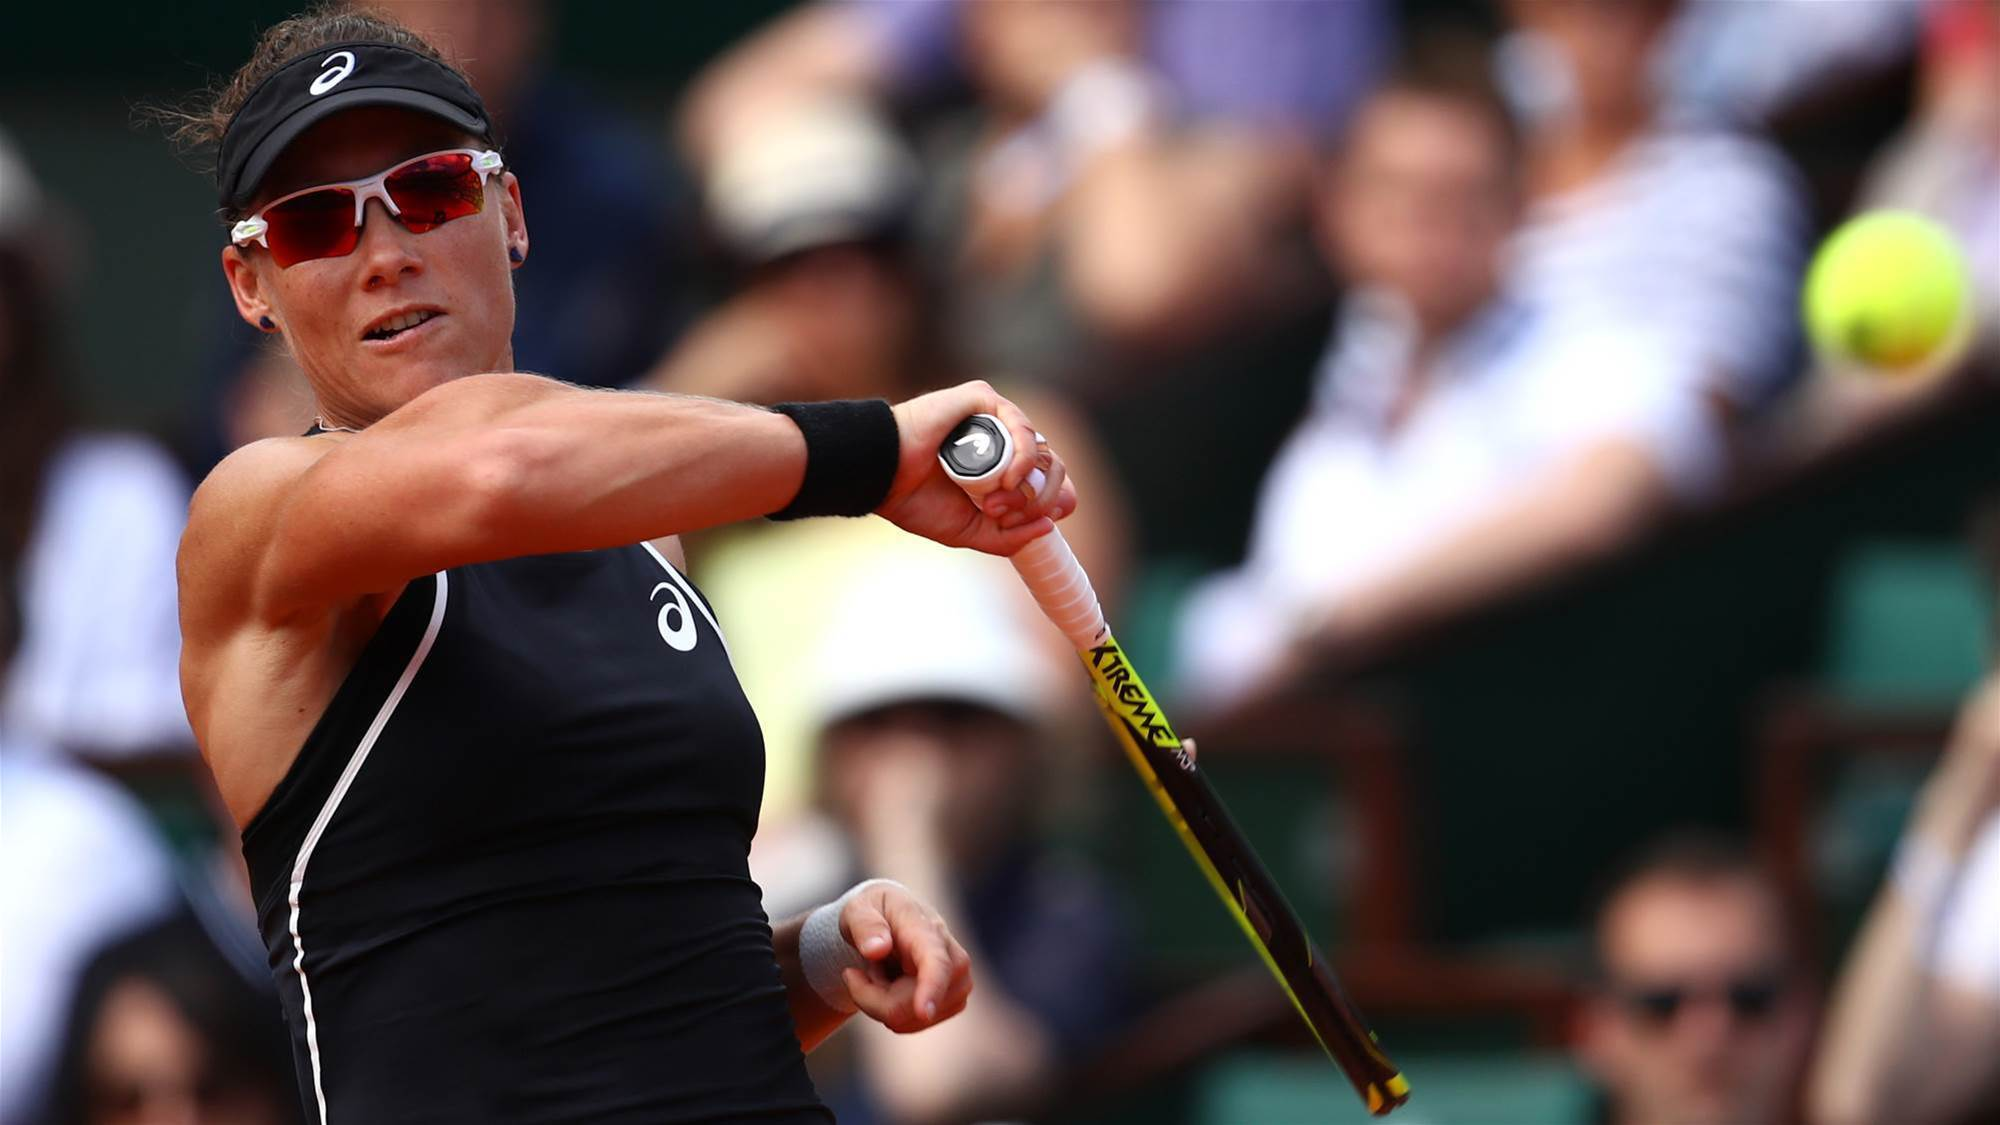 Stosur through to semis, Tomljanović misses out